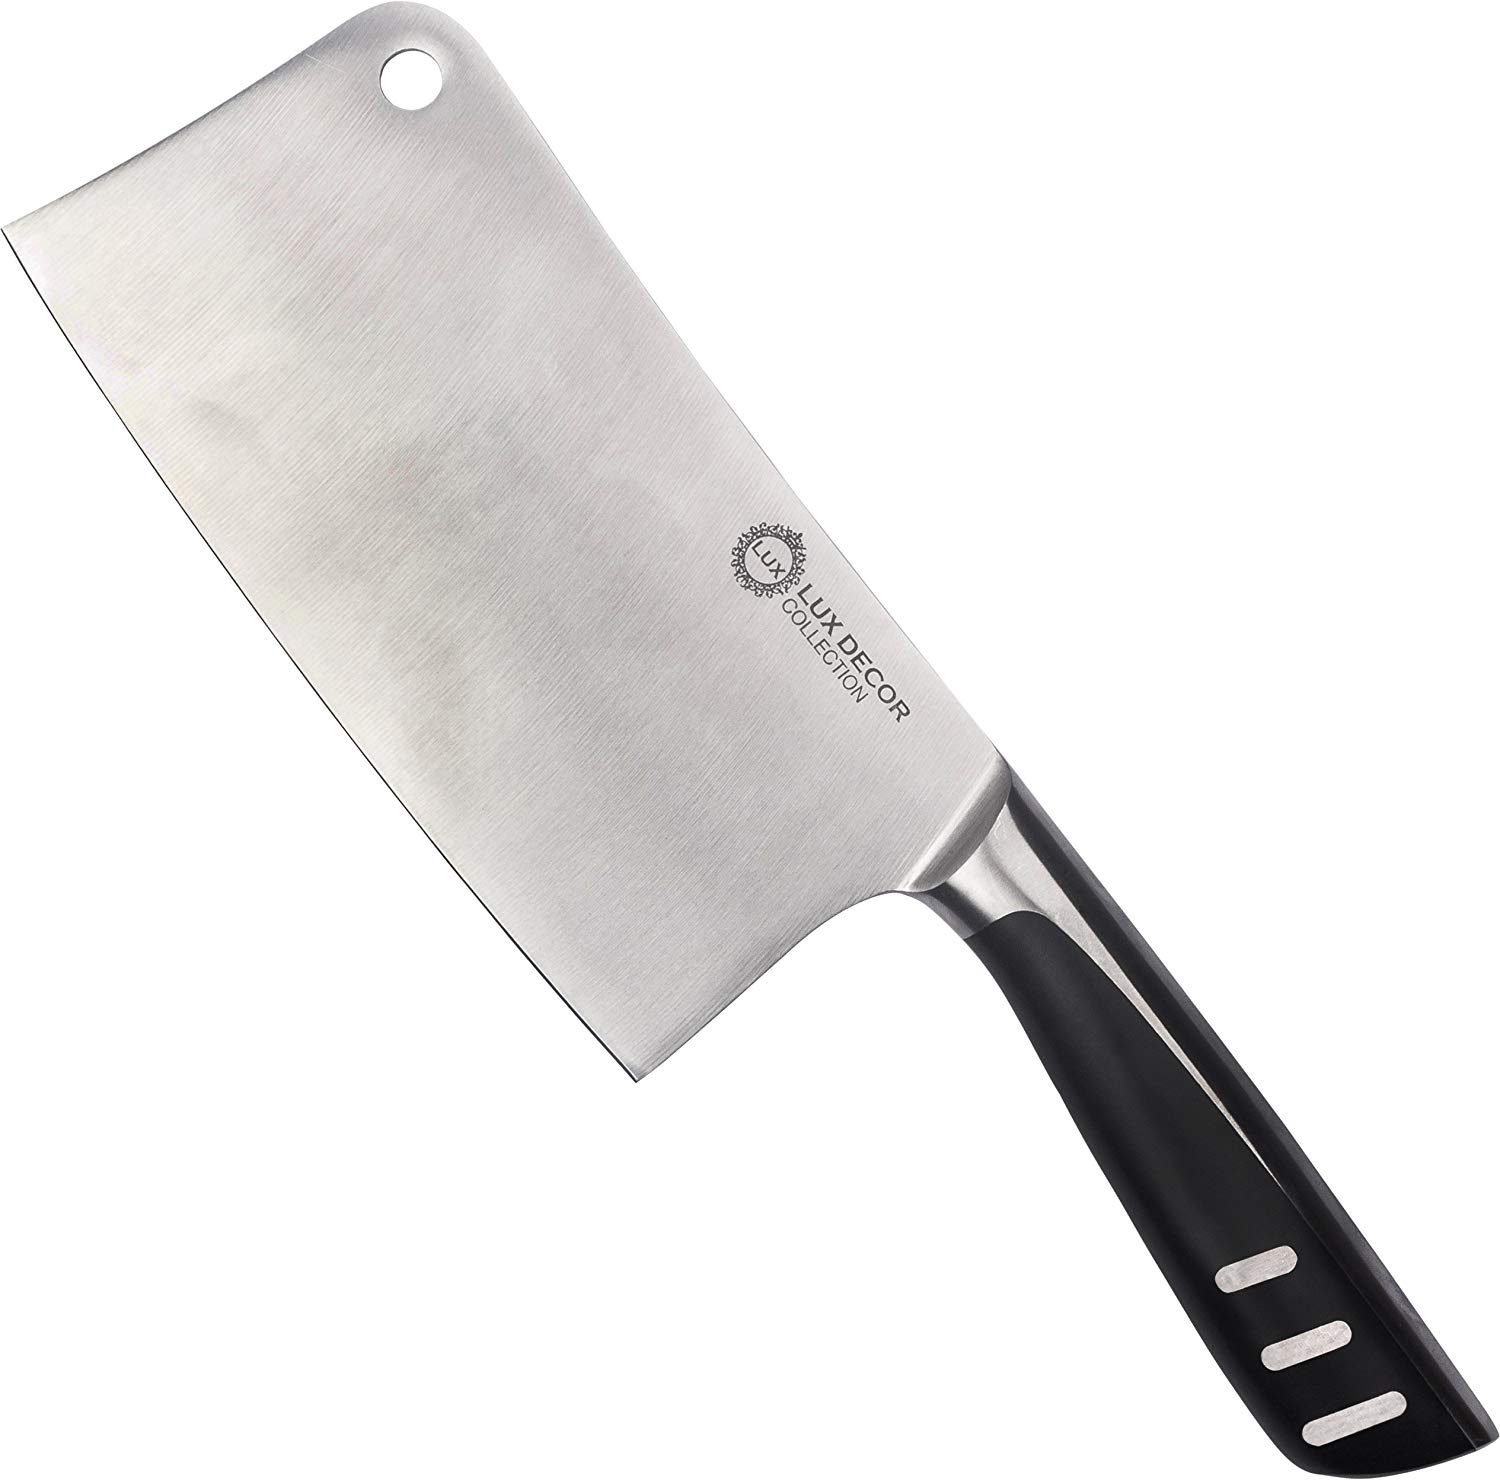 7 Inch Stainless Steel Cleaver � Butcher Knife � Chopper For Home Kitchen and Restaurant � High Carbon... by Lux Decor Collection